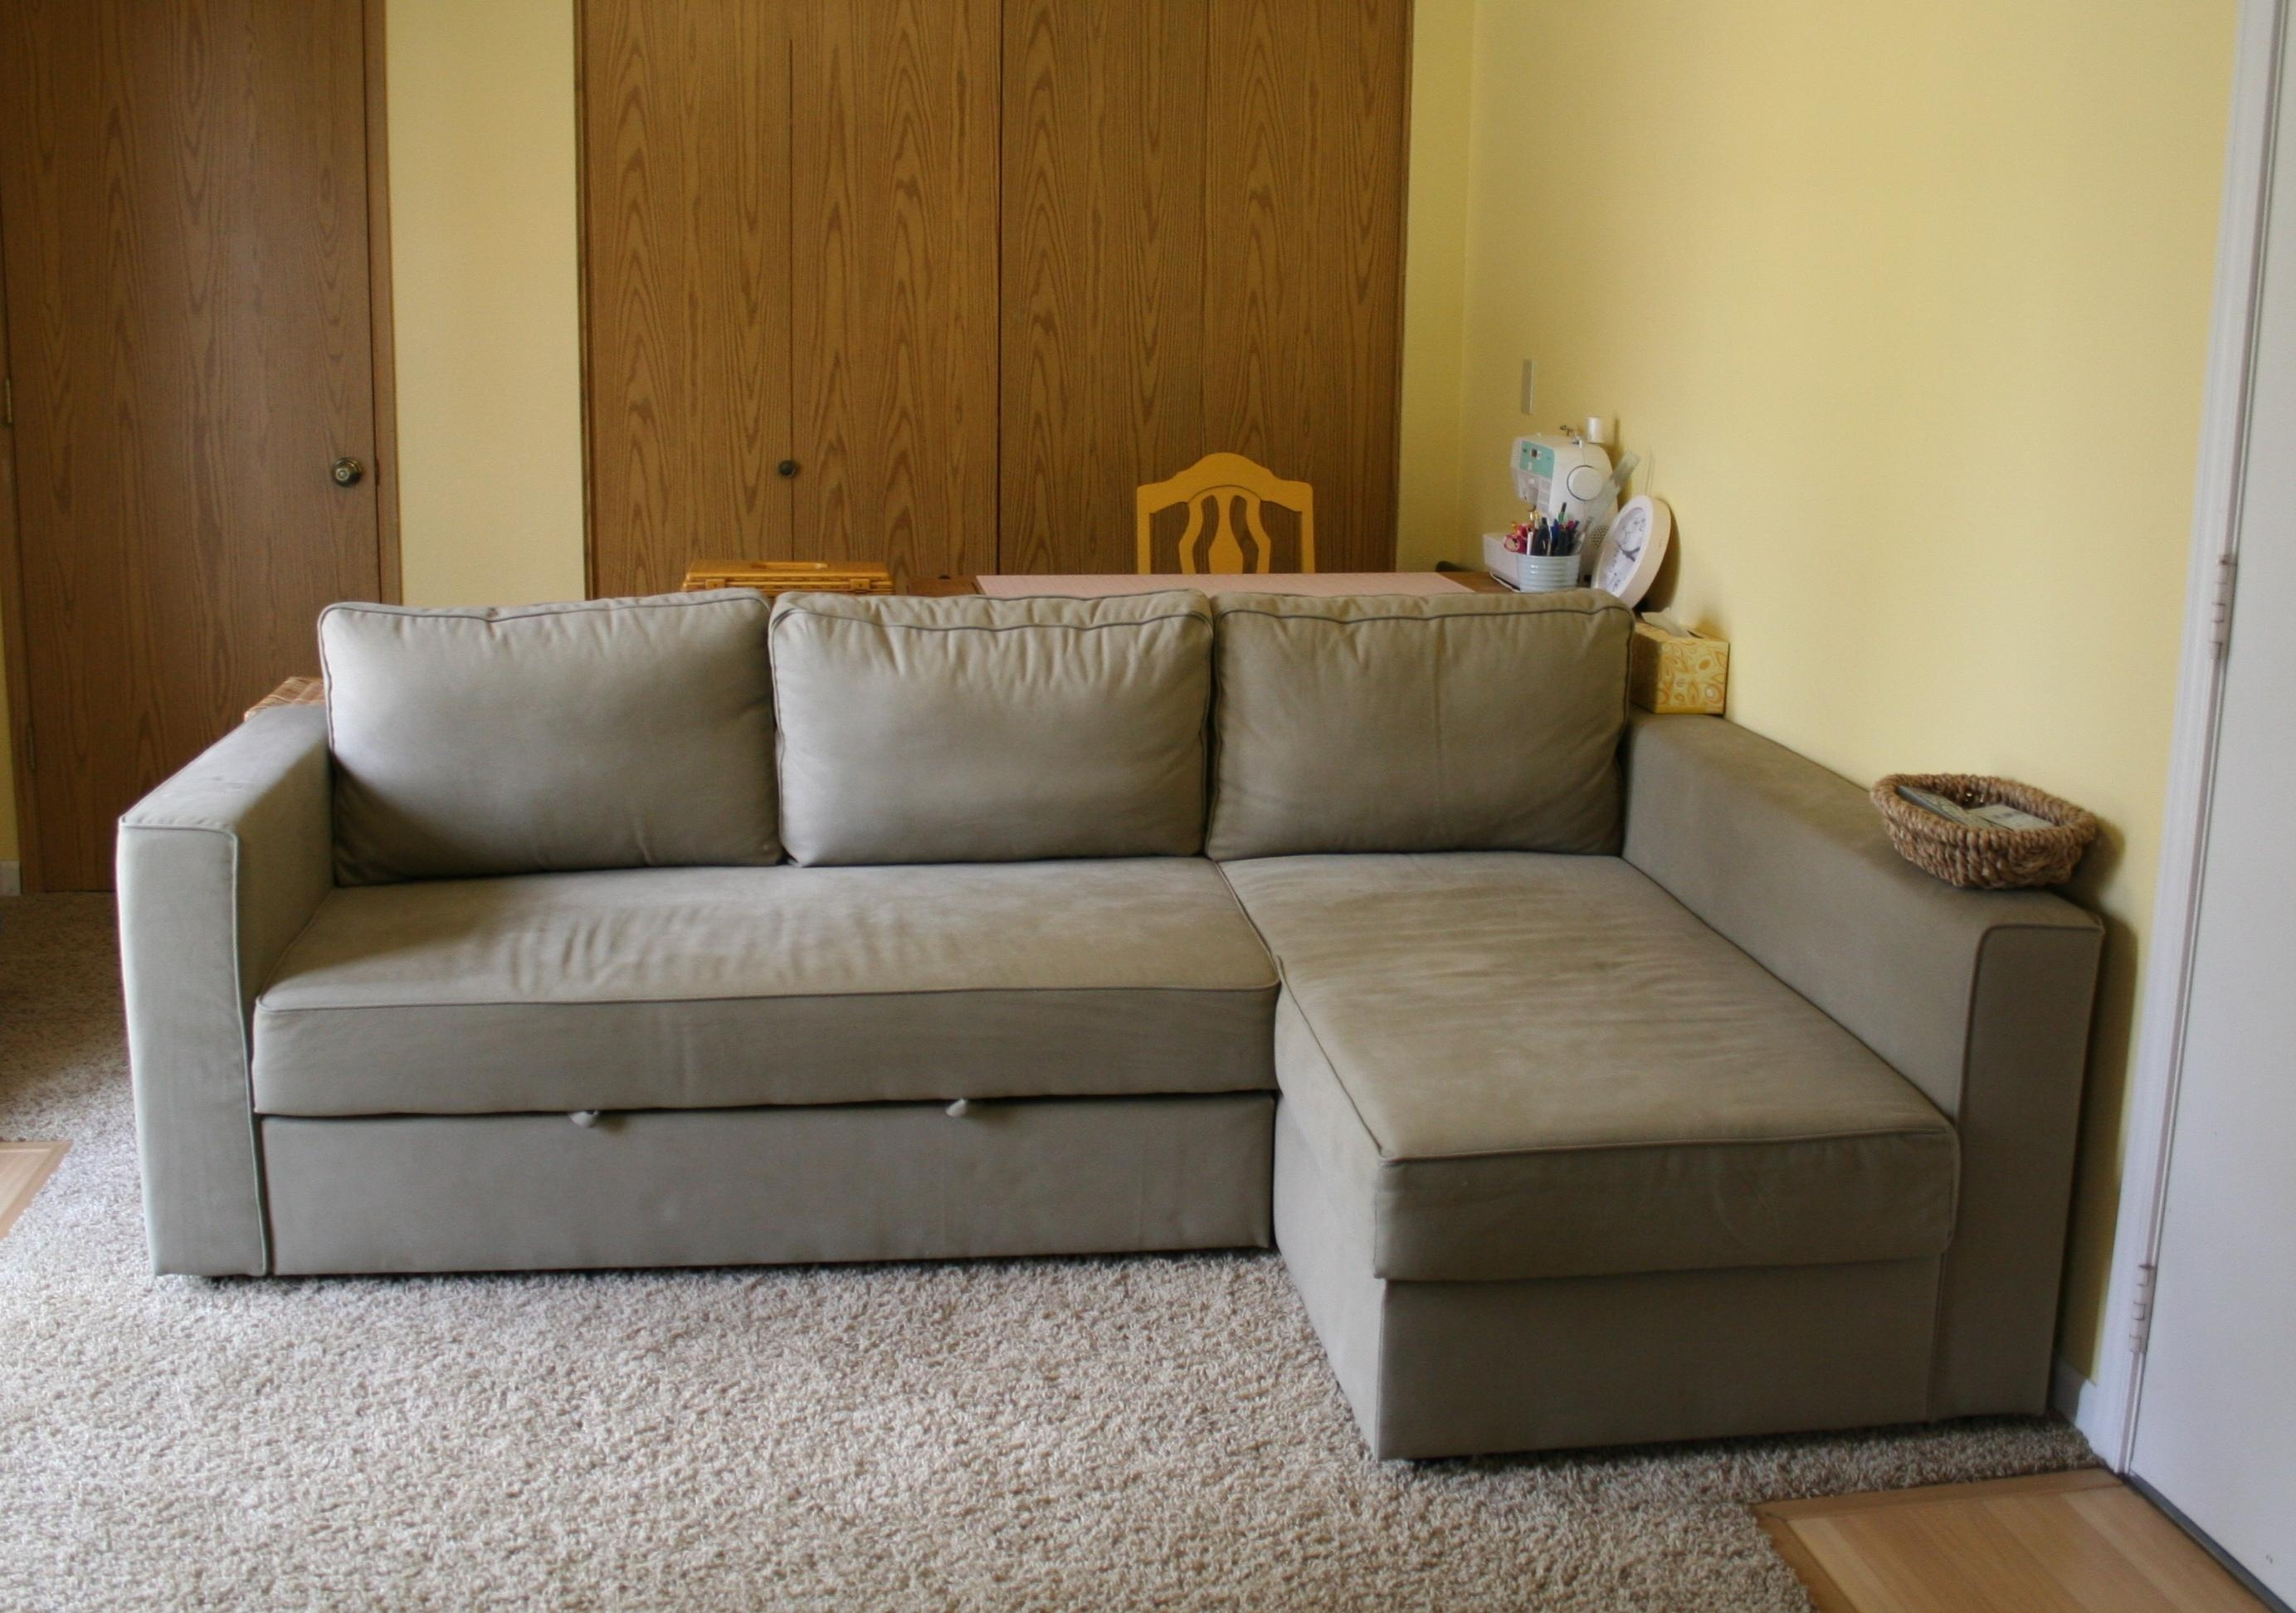 ikea couch sofa sectional manstad sofahusse 300 cm 20 top bed with storage from ideas